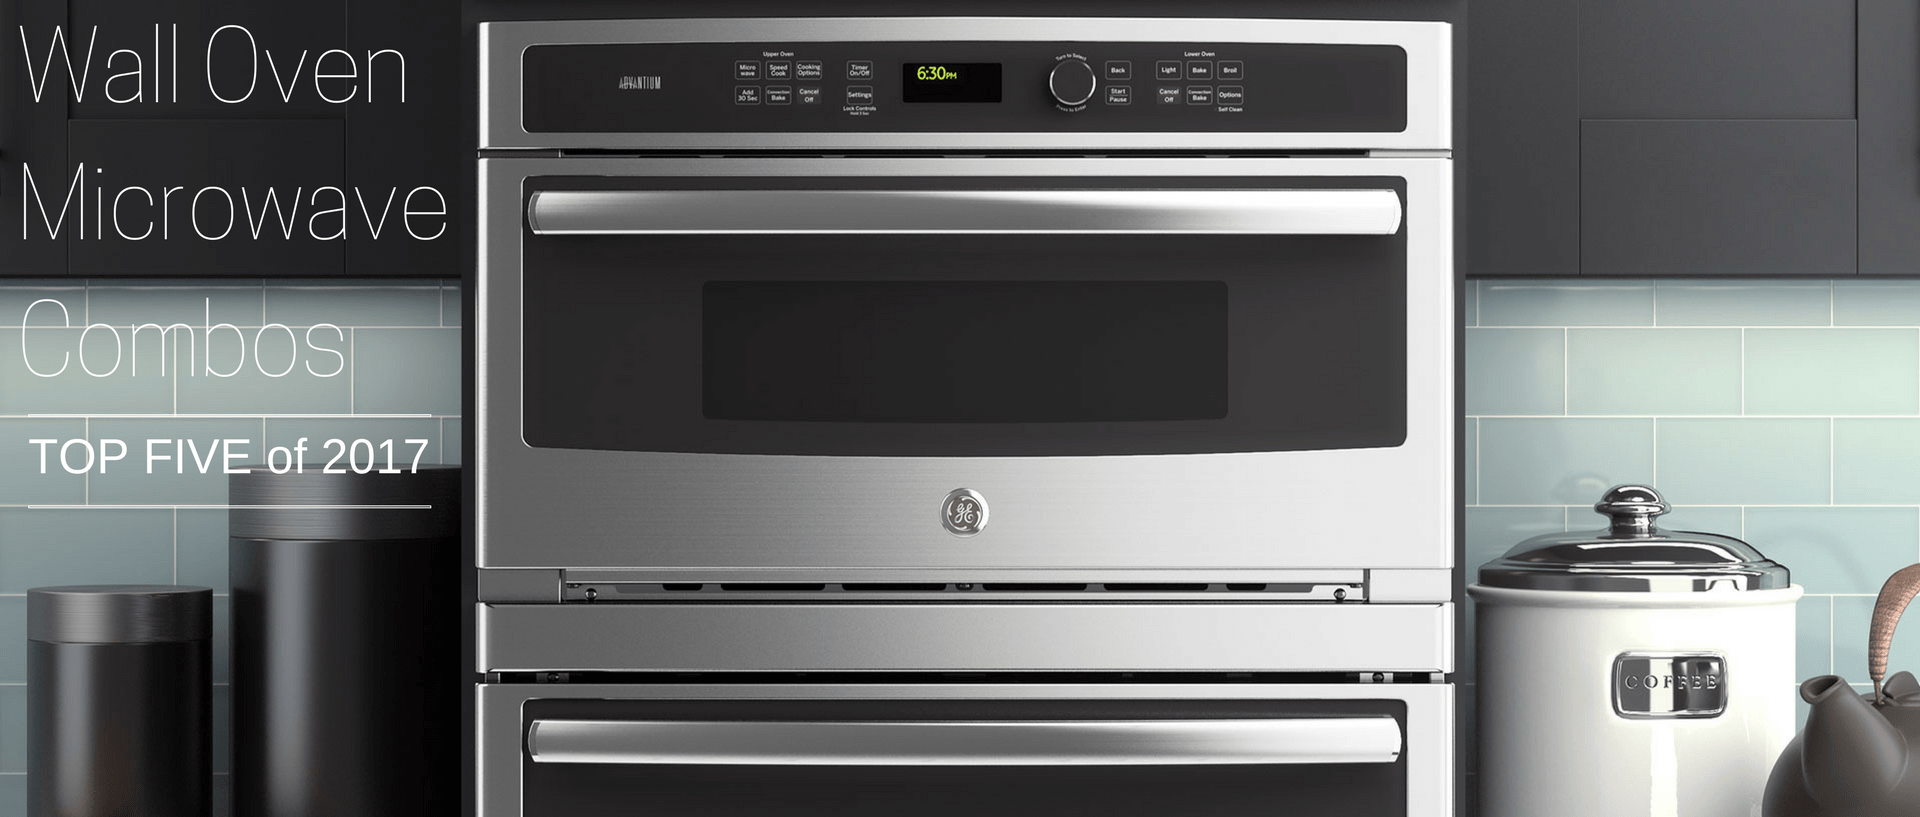 30 Wall Ovens Top 5 Wall Oven Microwave Combos Of 2017 Appliances Connection